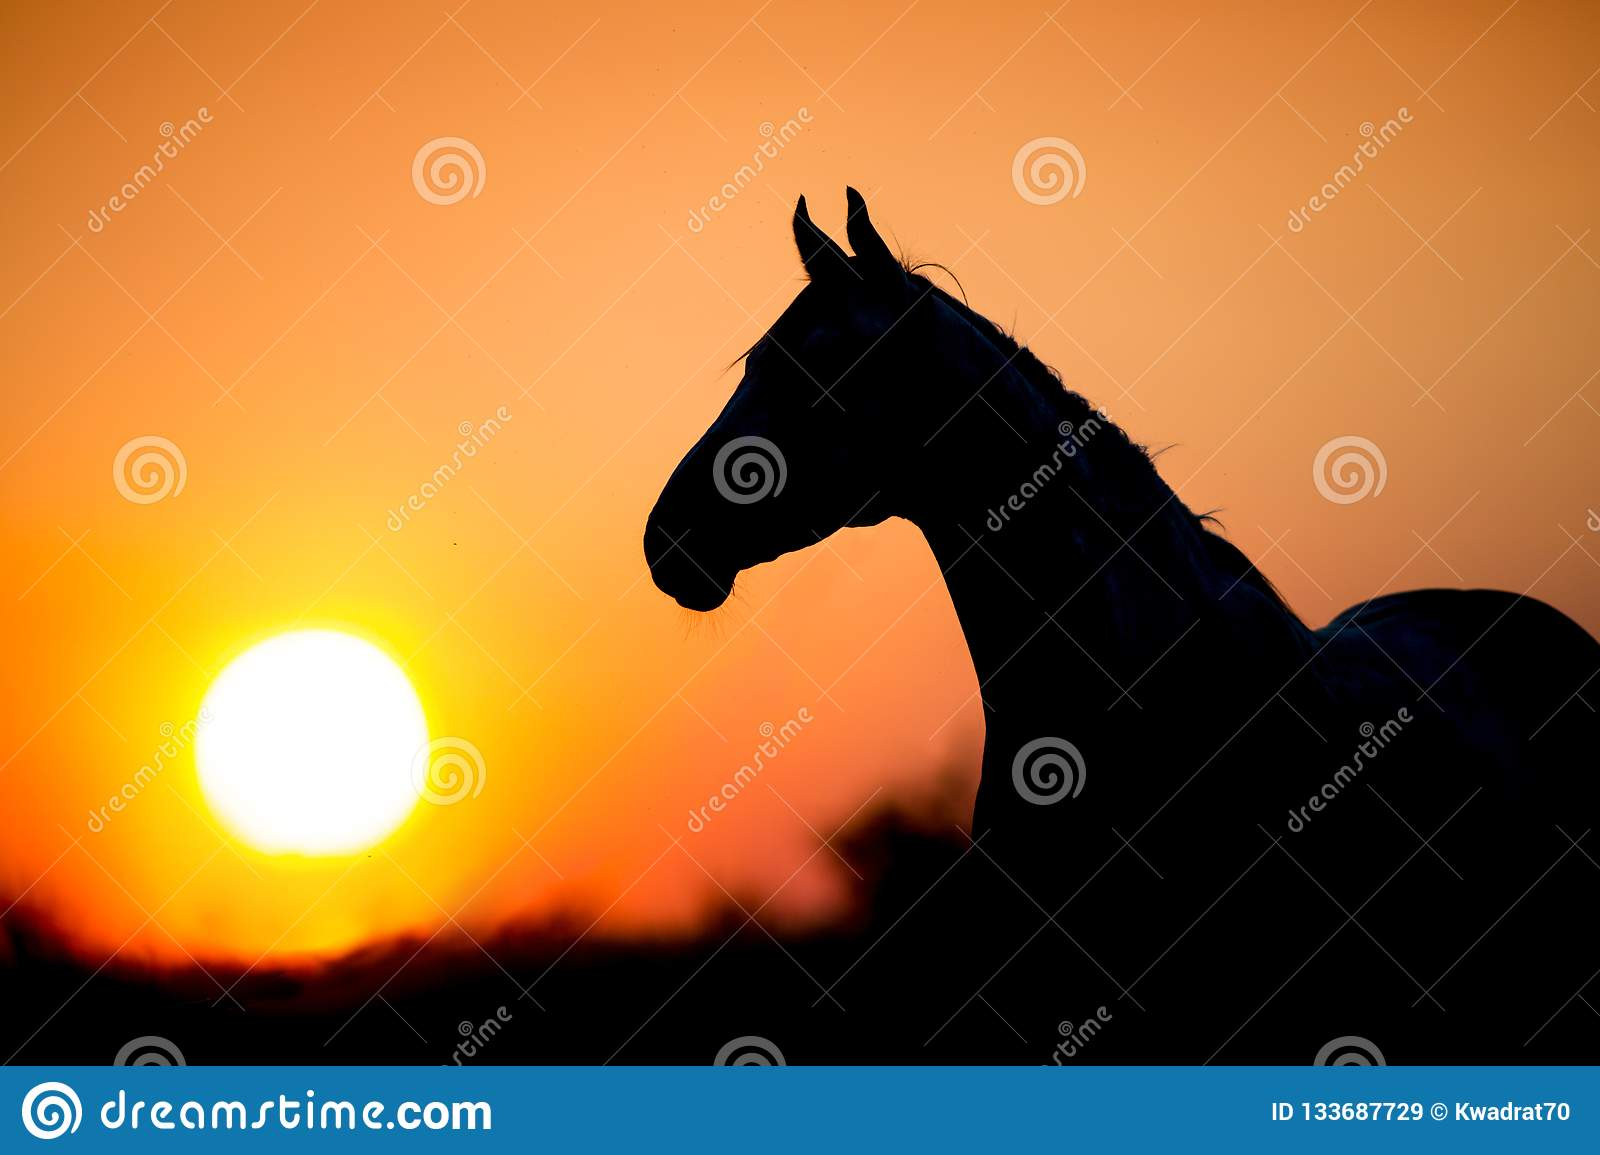 5 628 Horse Silhouette Sunset Photos Free Royalty Free Stock Photos From Dreamstime